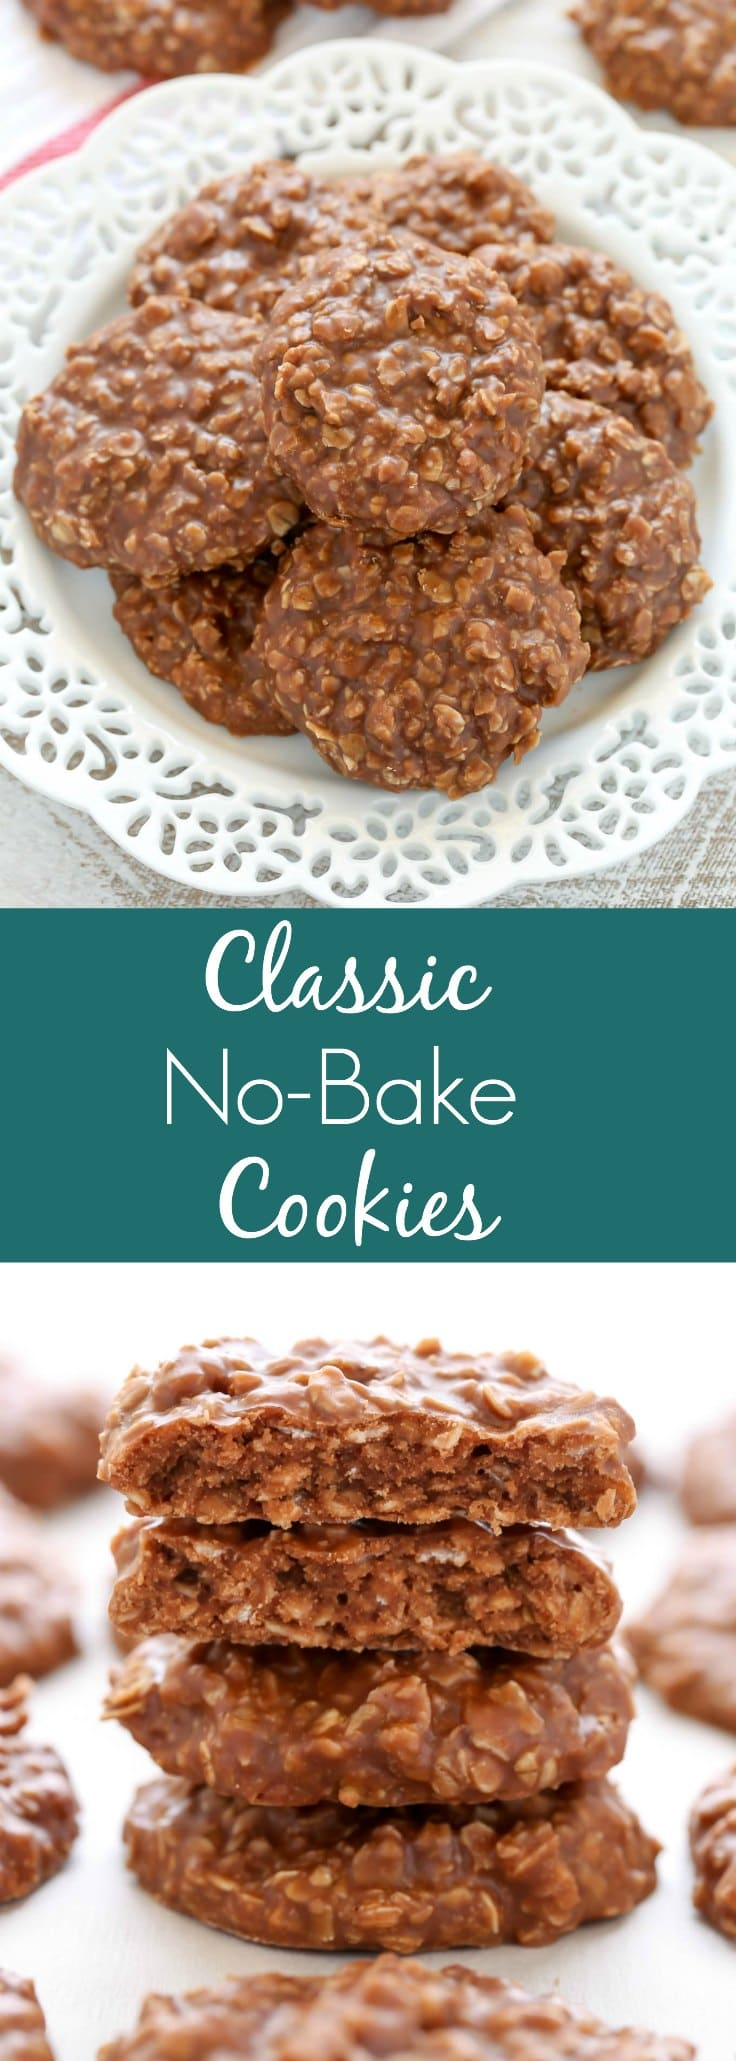 Classic No-bake Cookies Recipe